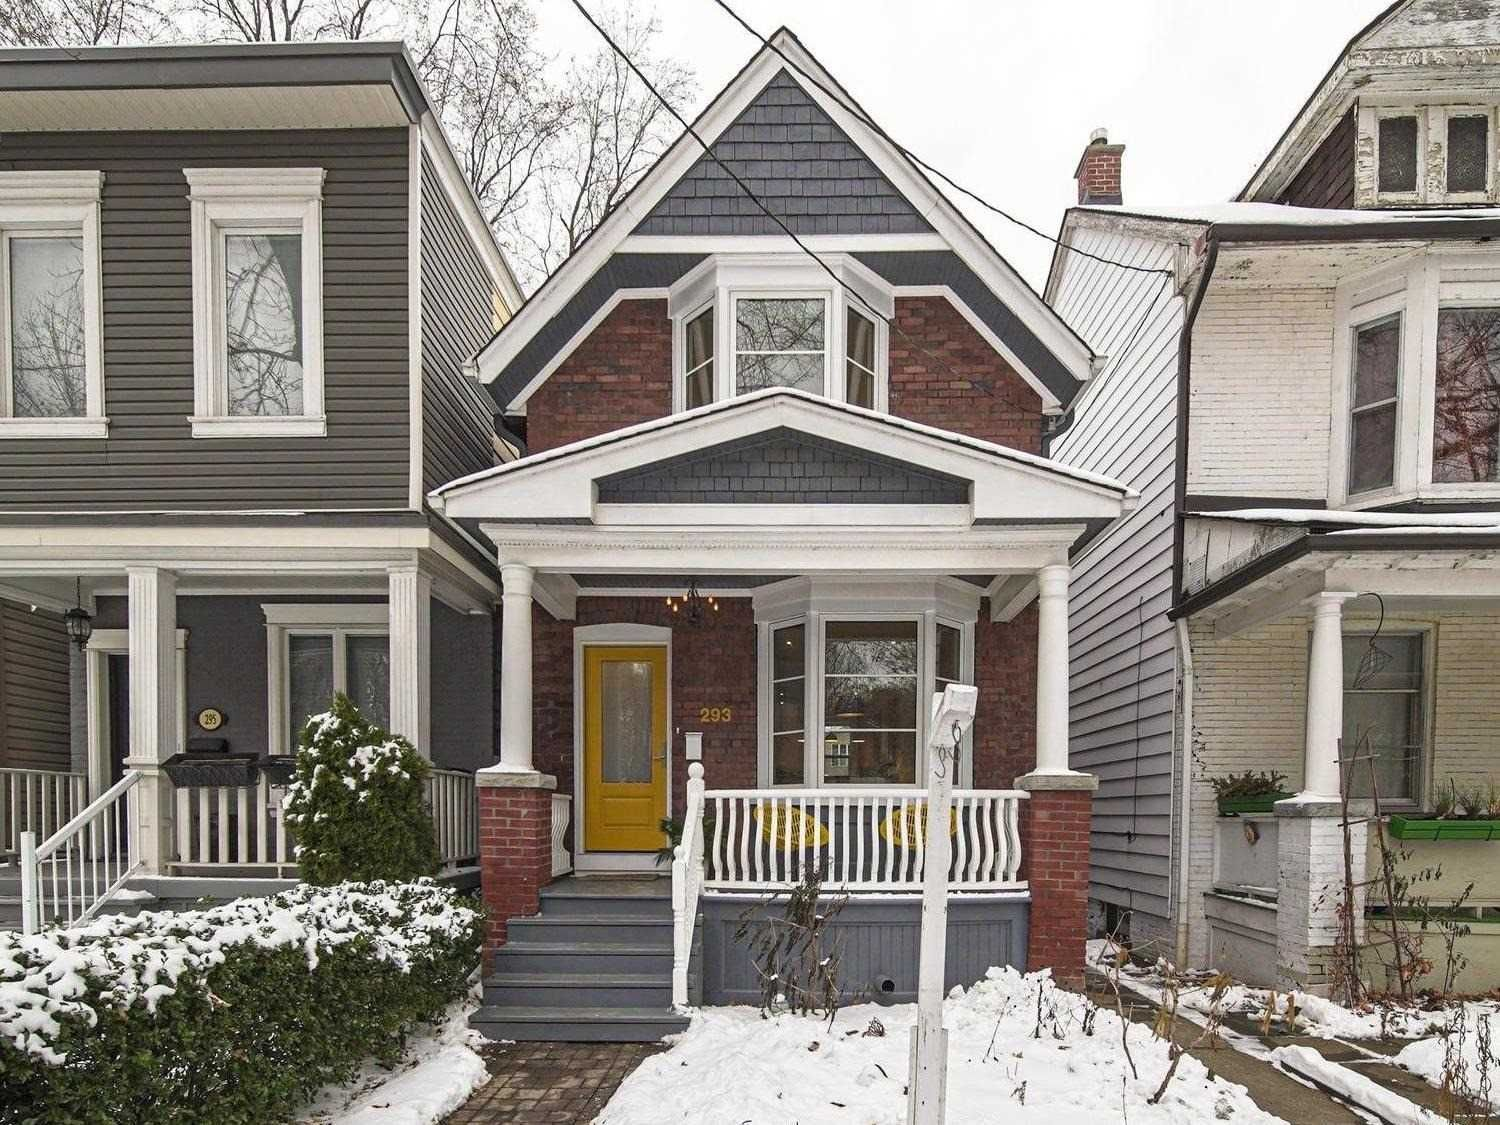 Main Photo: 293 Booth Avenue in Toronto: South Riverdale House (2-Storey) for sale (Toronto E01)  : MLS®# E4647605